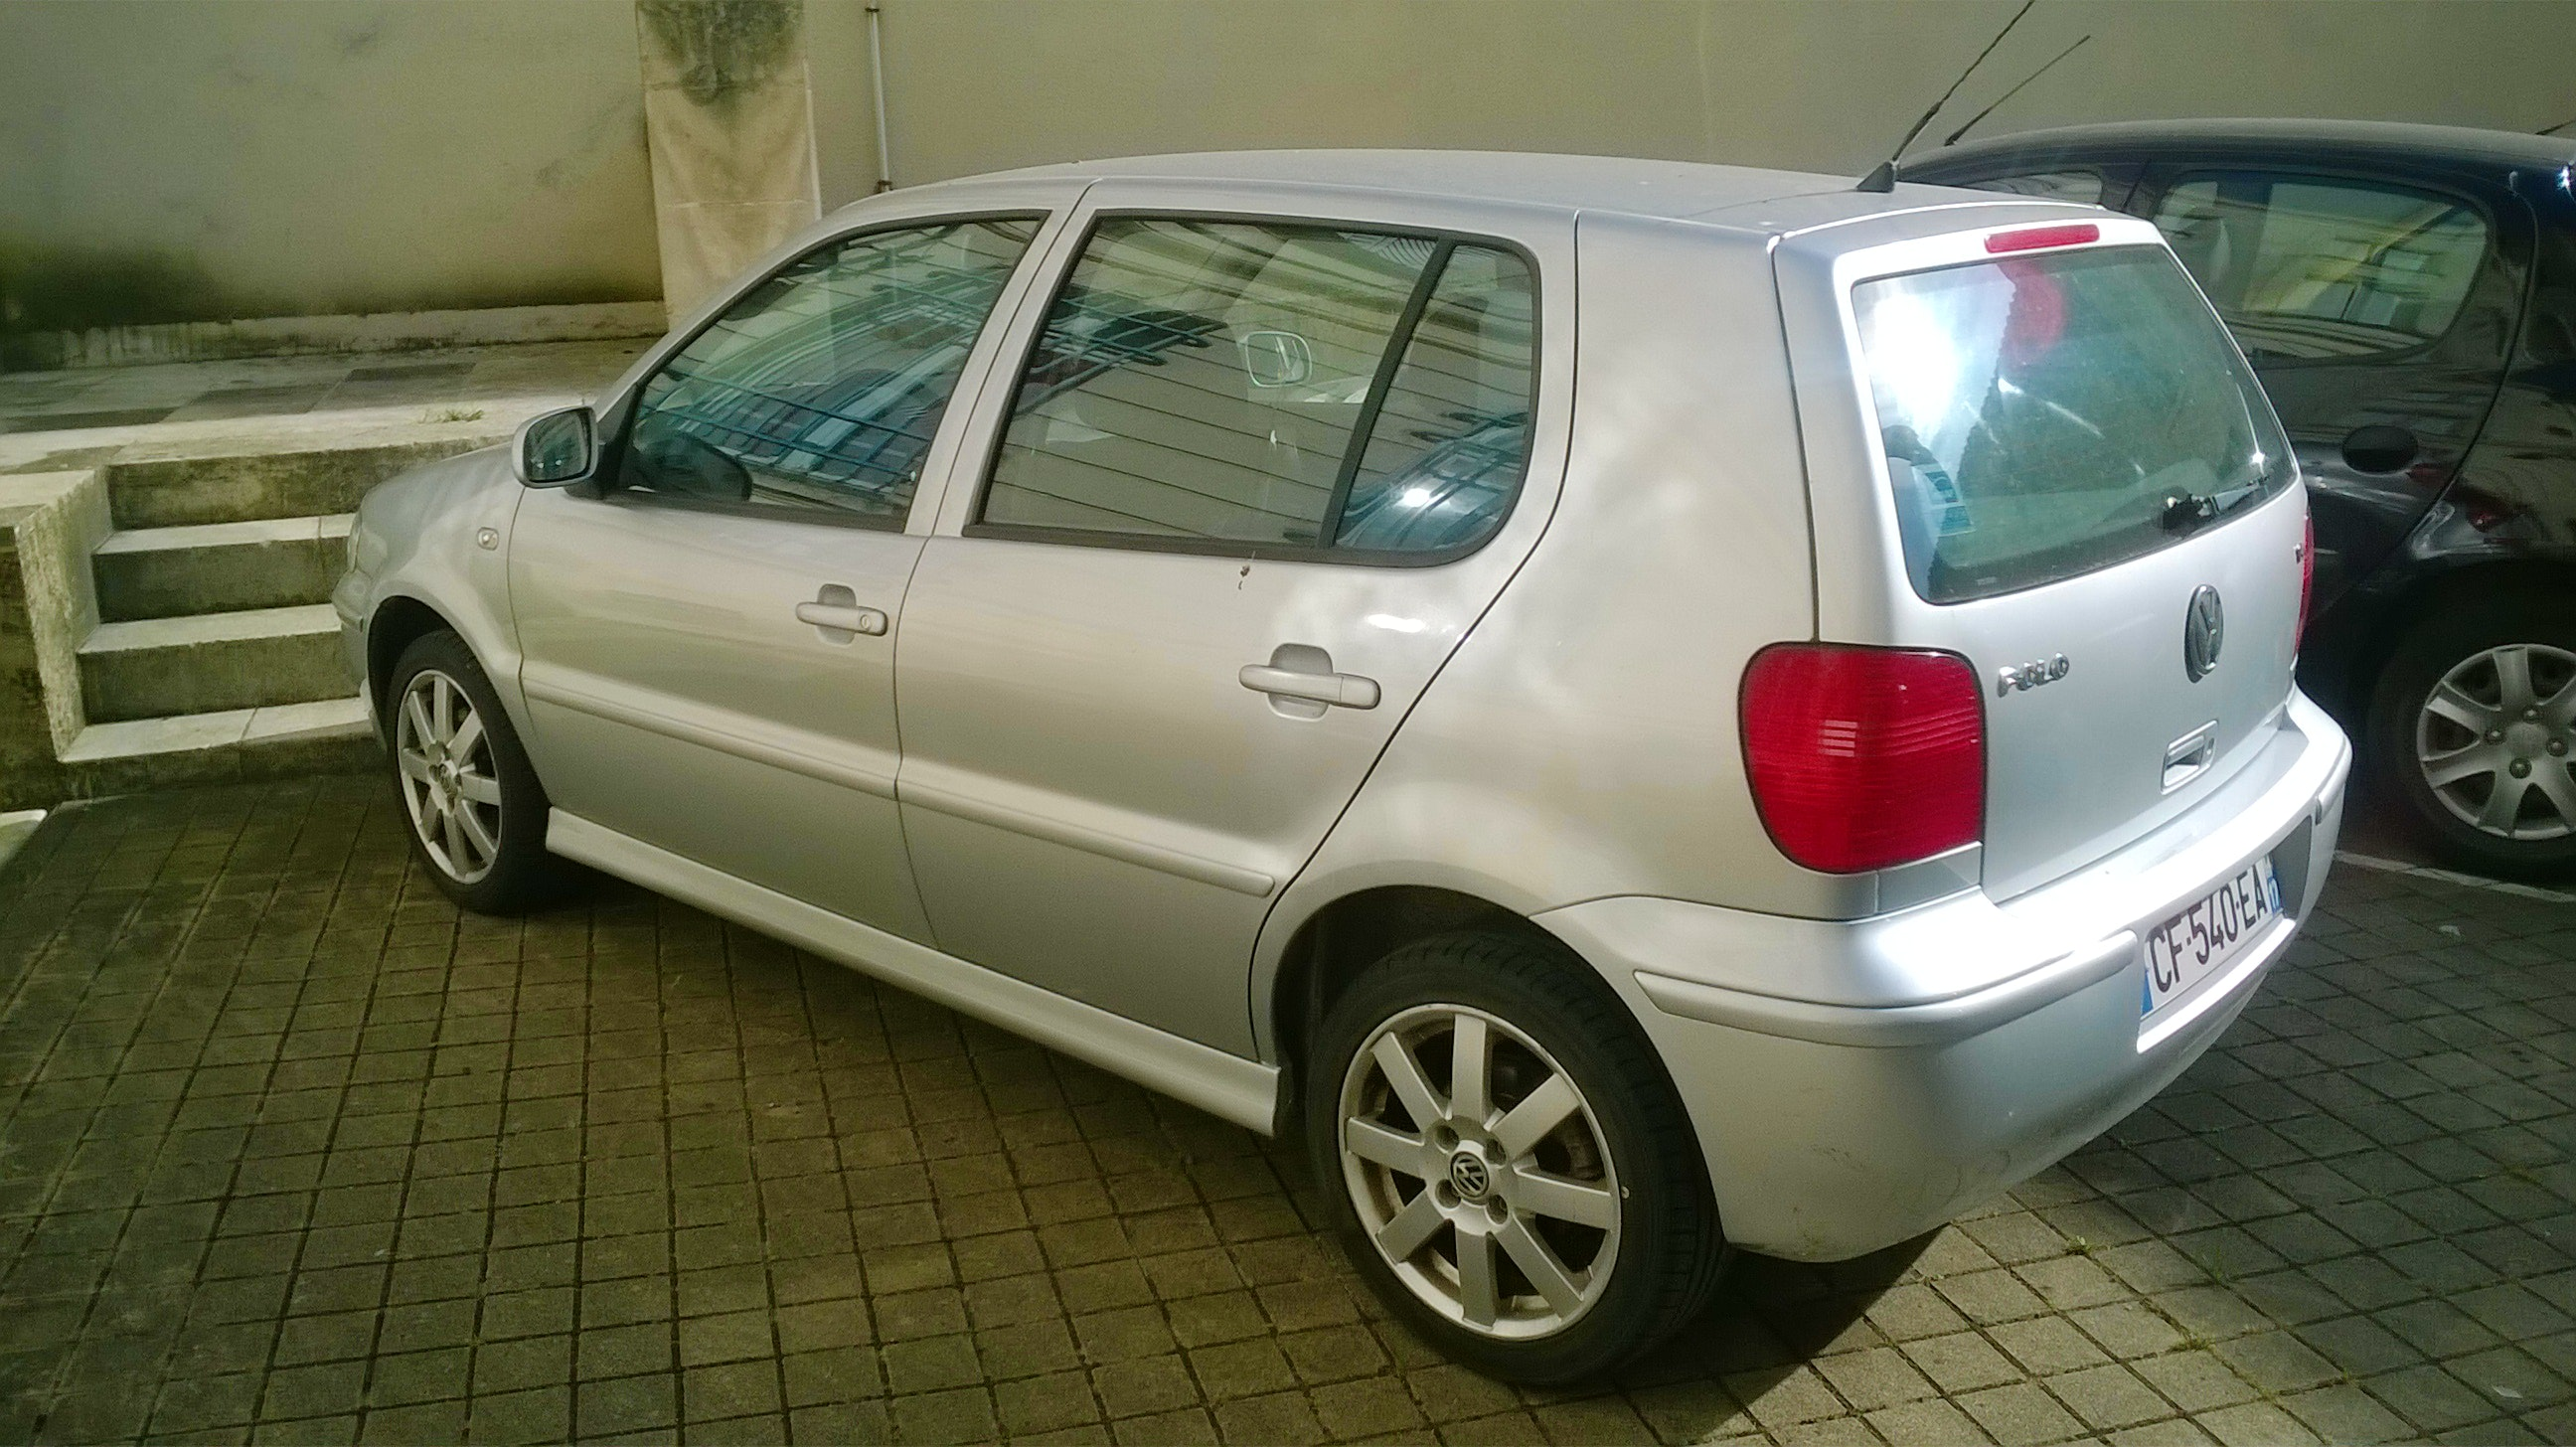 Volkswagen Polo III Restylée 1.4 i 75cv, 2001, Essence